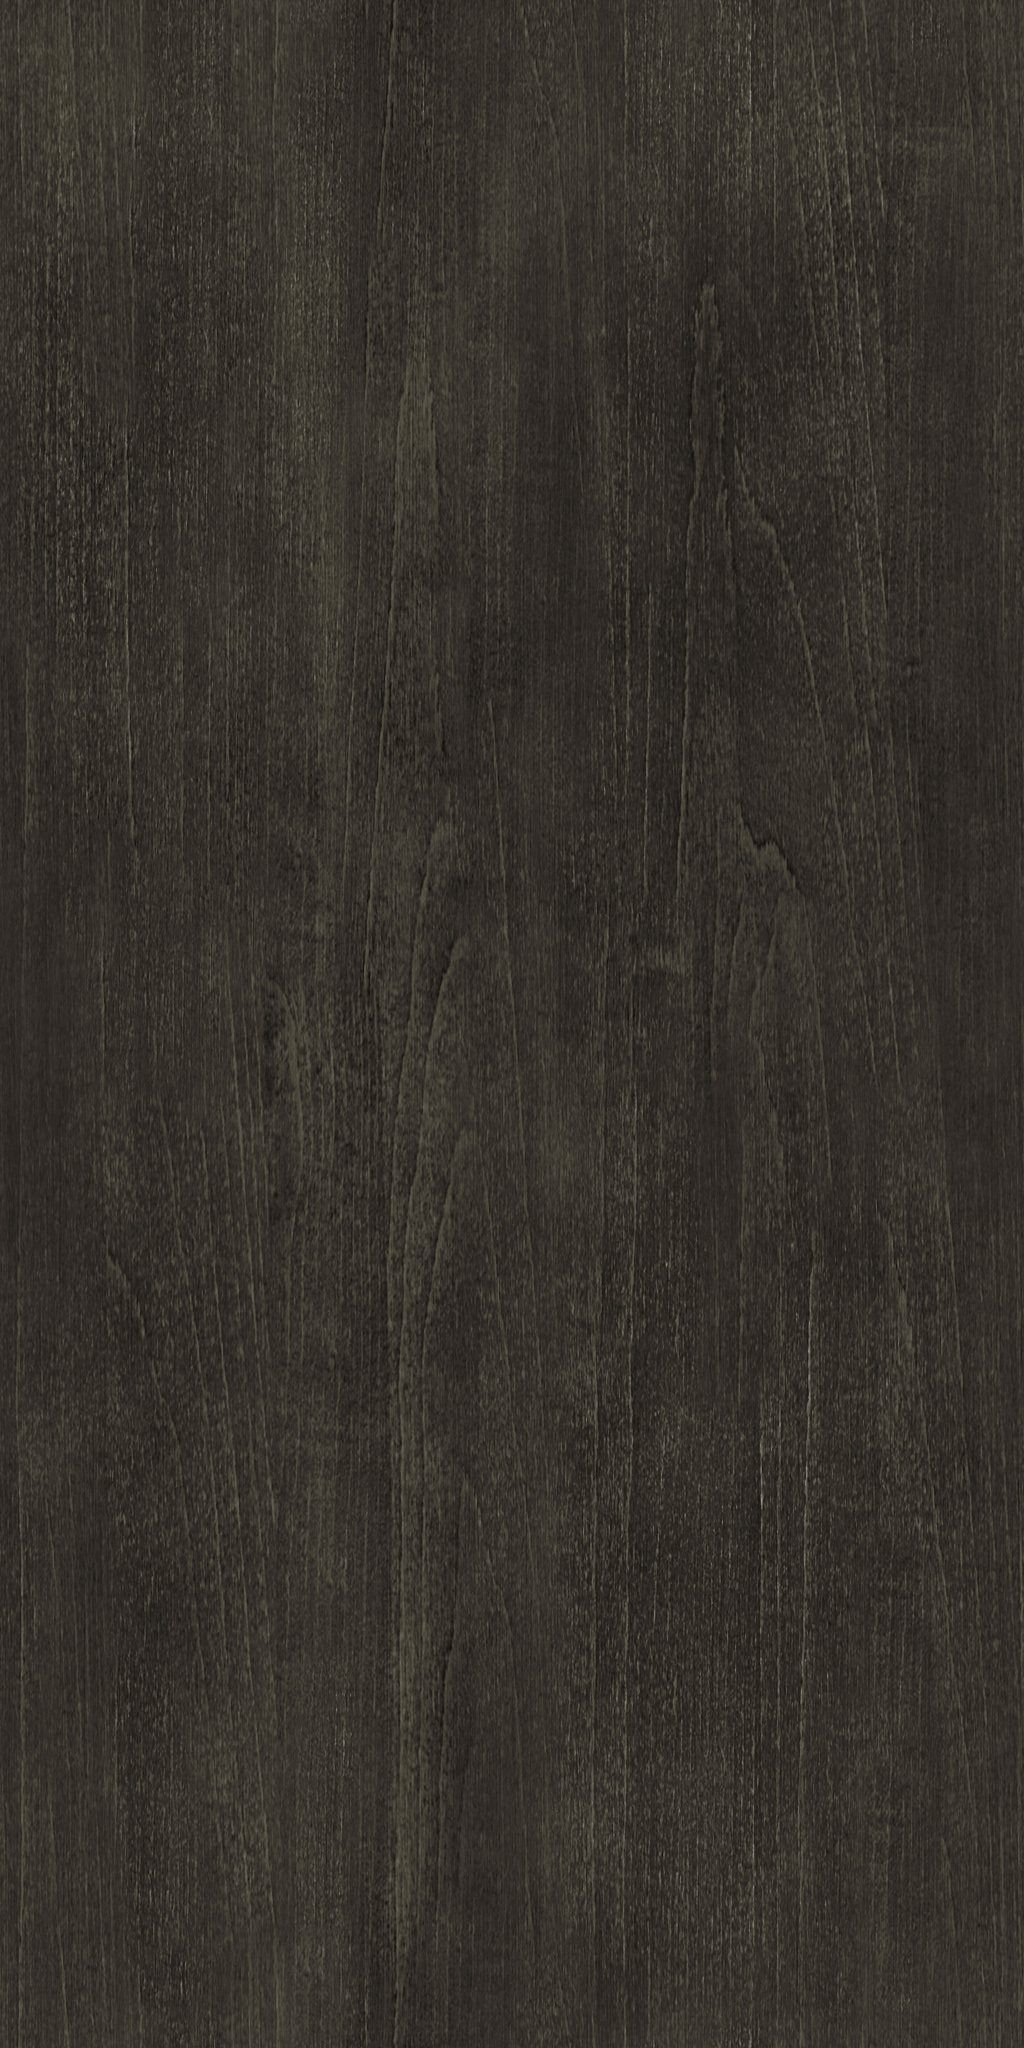 Seamless Dark Wood Floor Texture Ideas 619713 Floor Ideas Design More